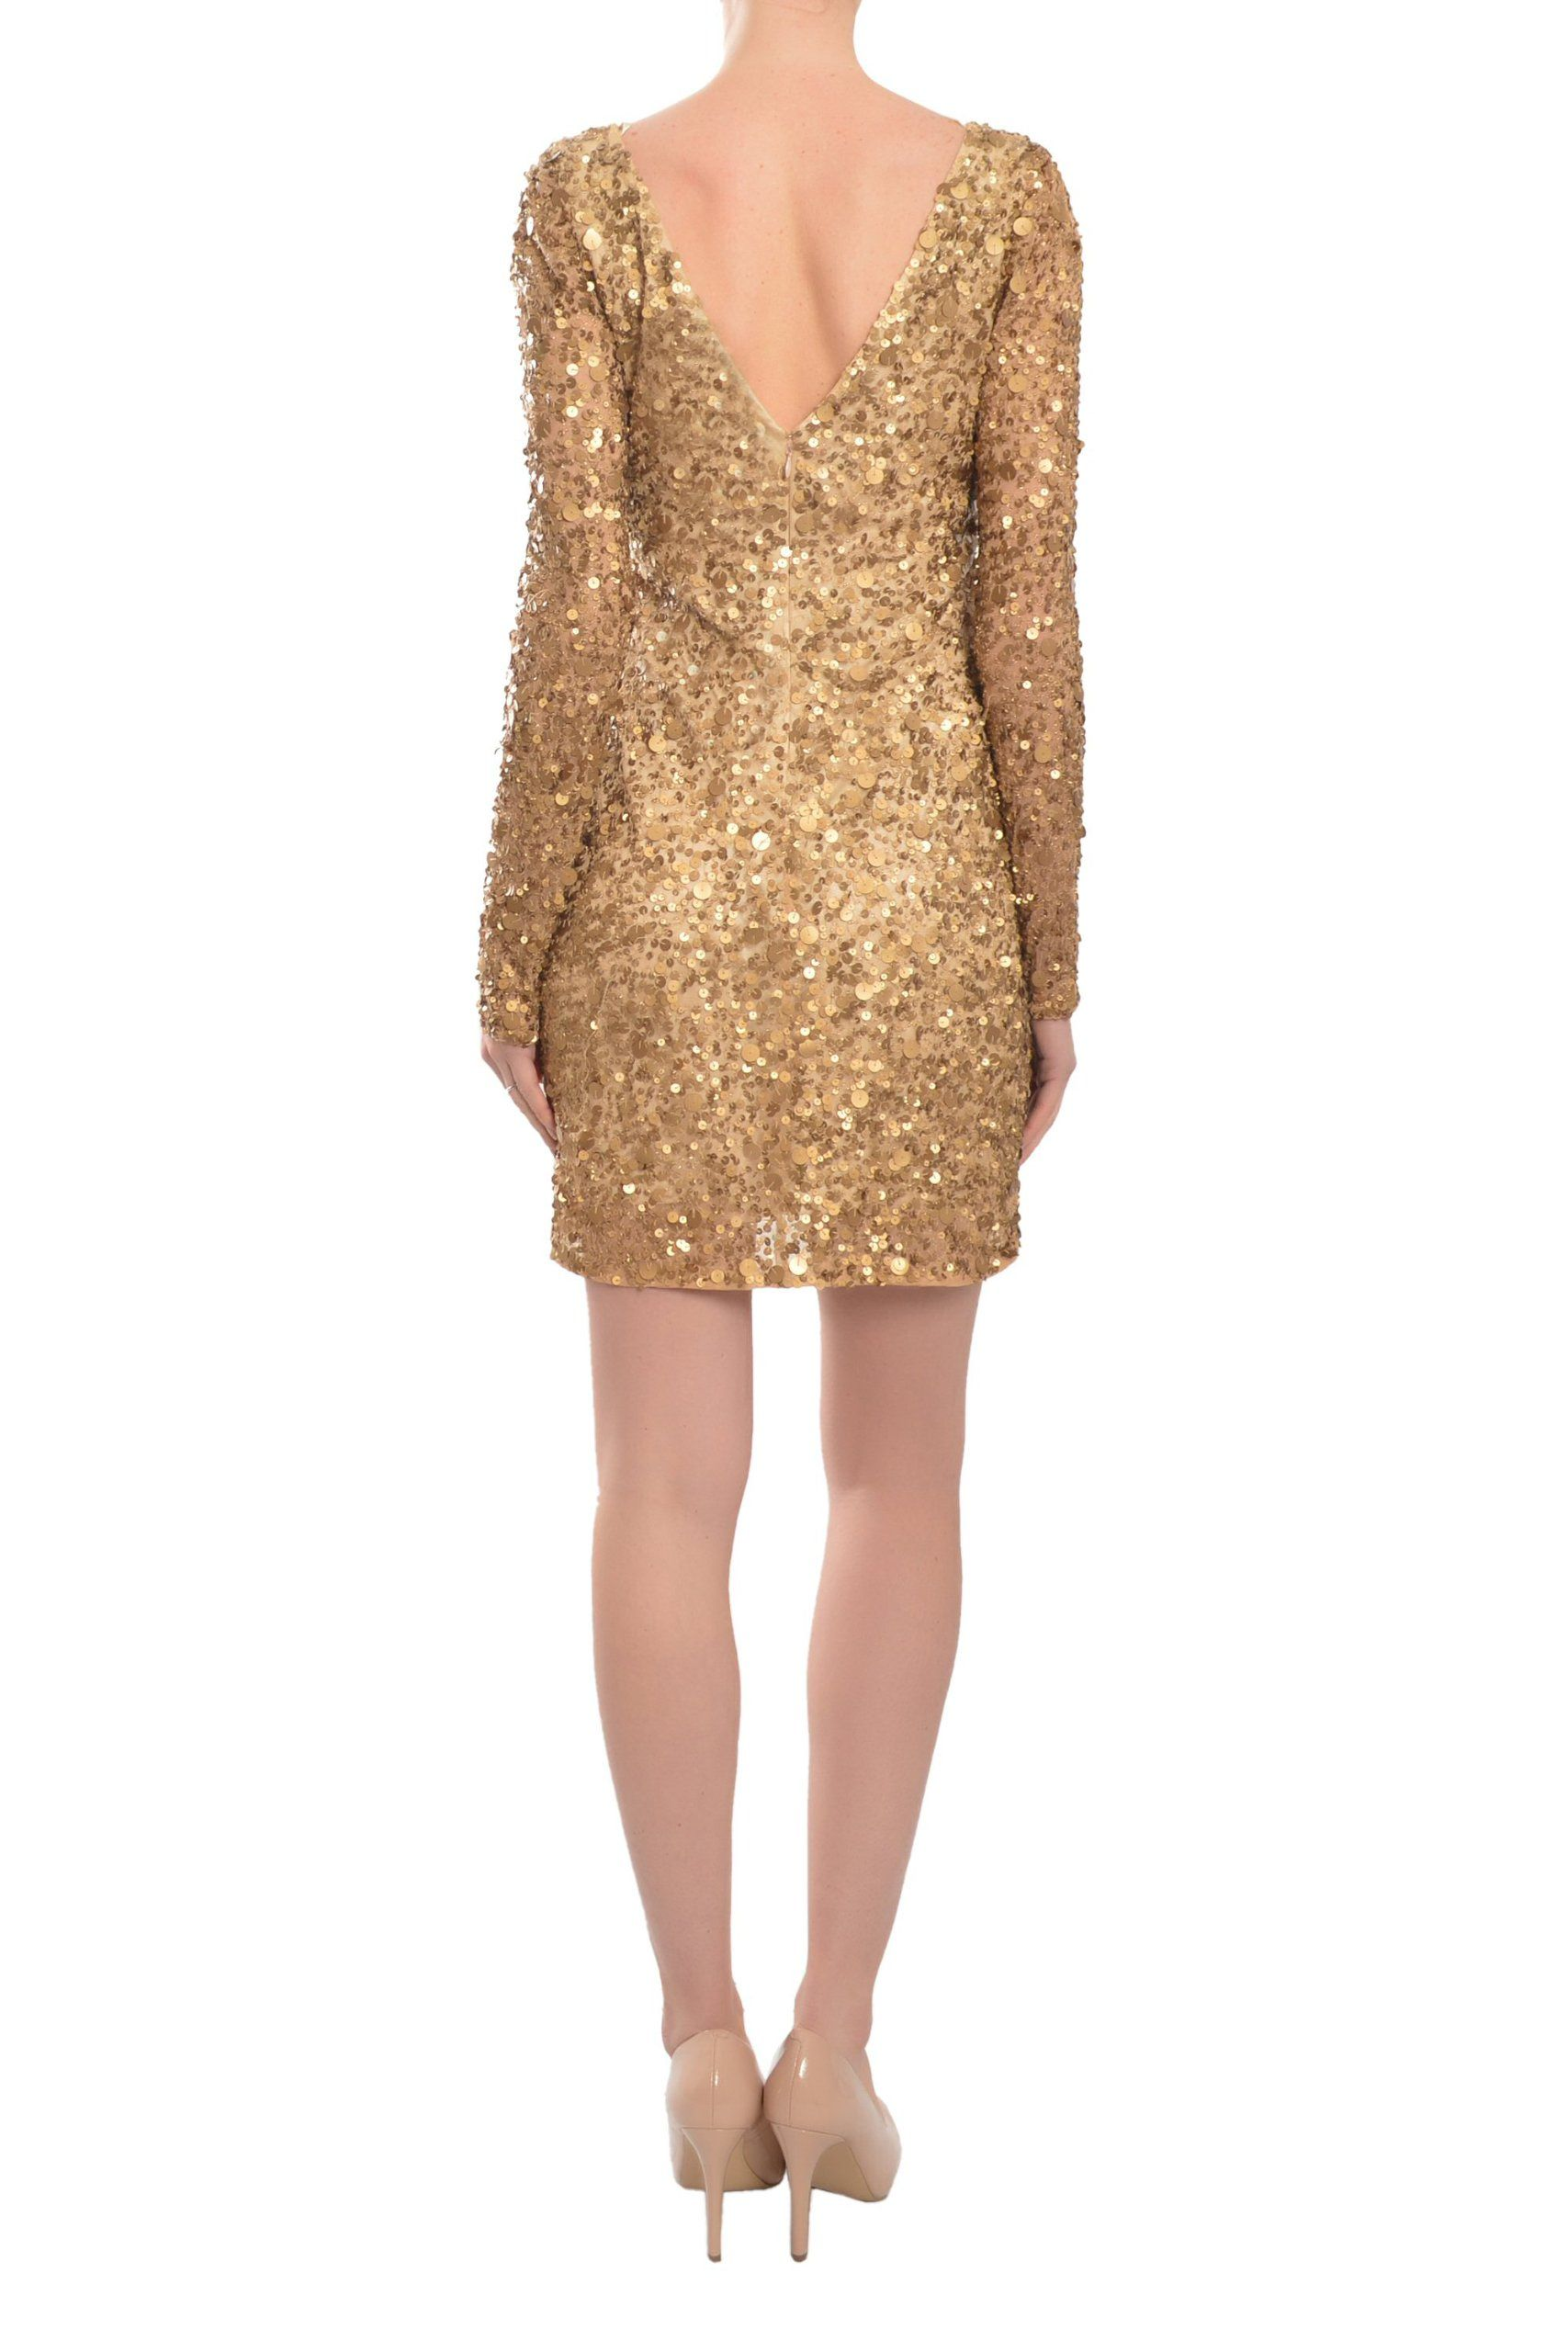 Aidan mattox stunning sequin long sleeve cocktail evening dress